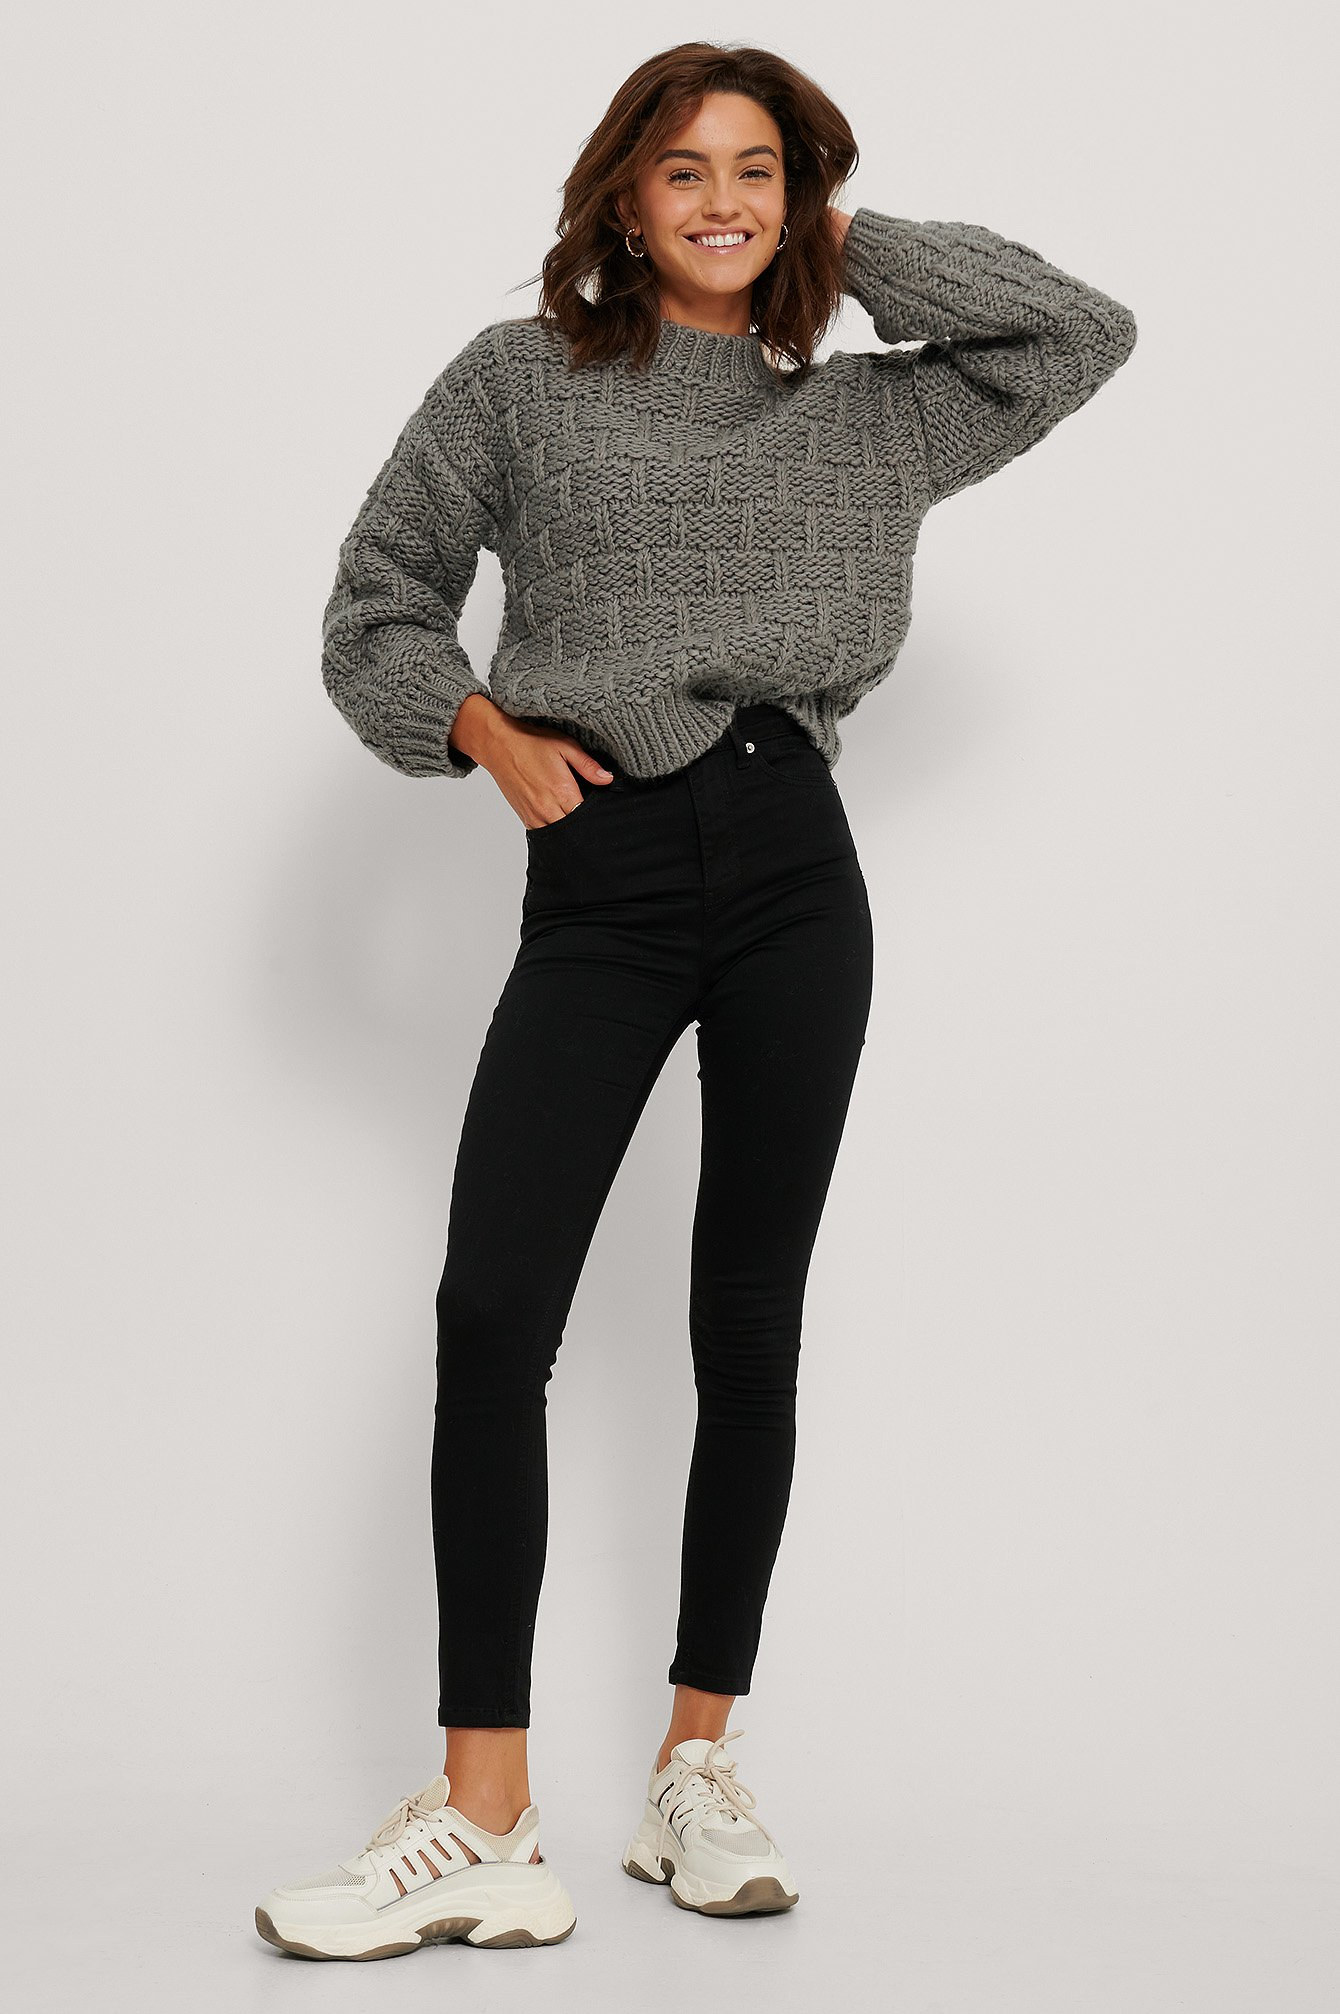 Black Skinny High Waist Jeans